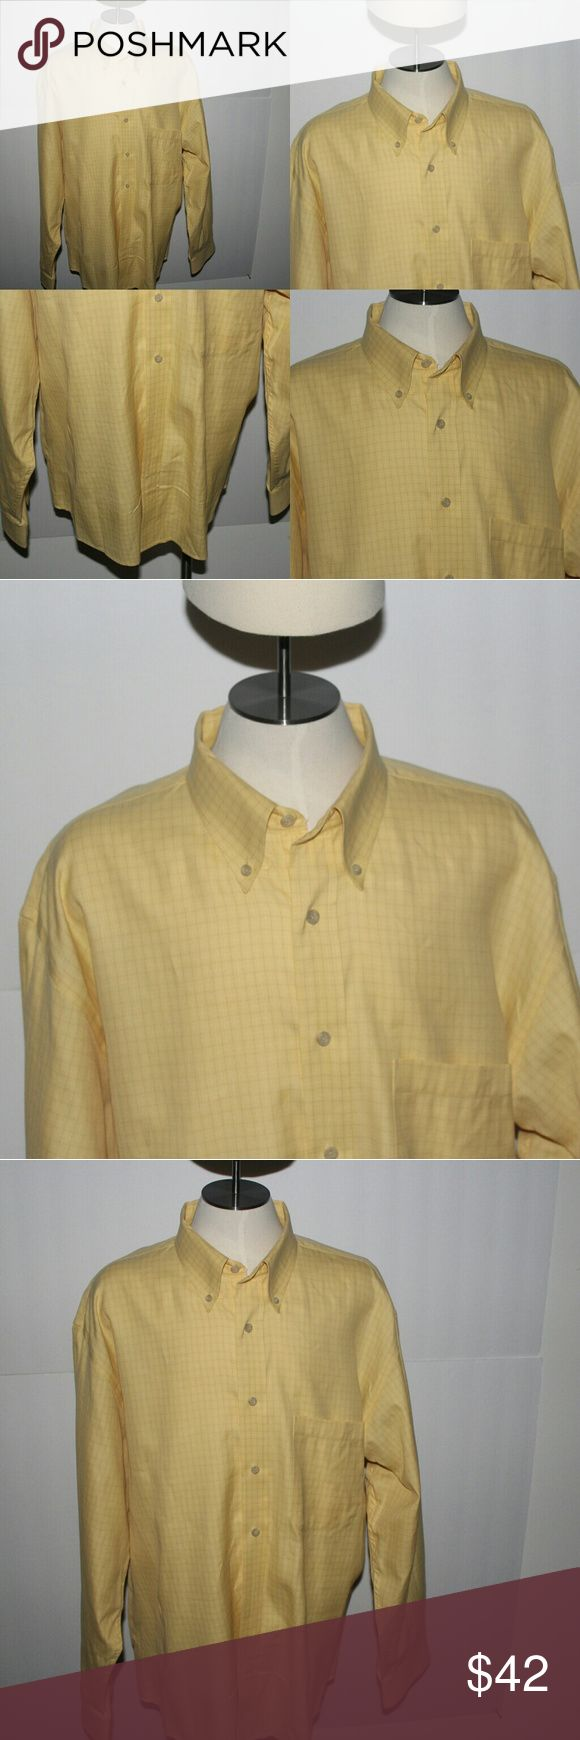 Pendleton Dress shirt Yellow Size XLarge Very nice and crisp Pendleton Shirt. Yellow dress shirt with pin striped checks. XL dress shirt. A must have for all business or casual encounters! Pendleton Shirts Dress Shirts